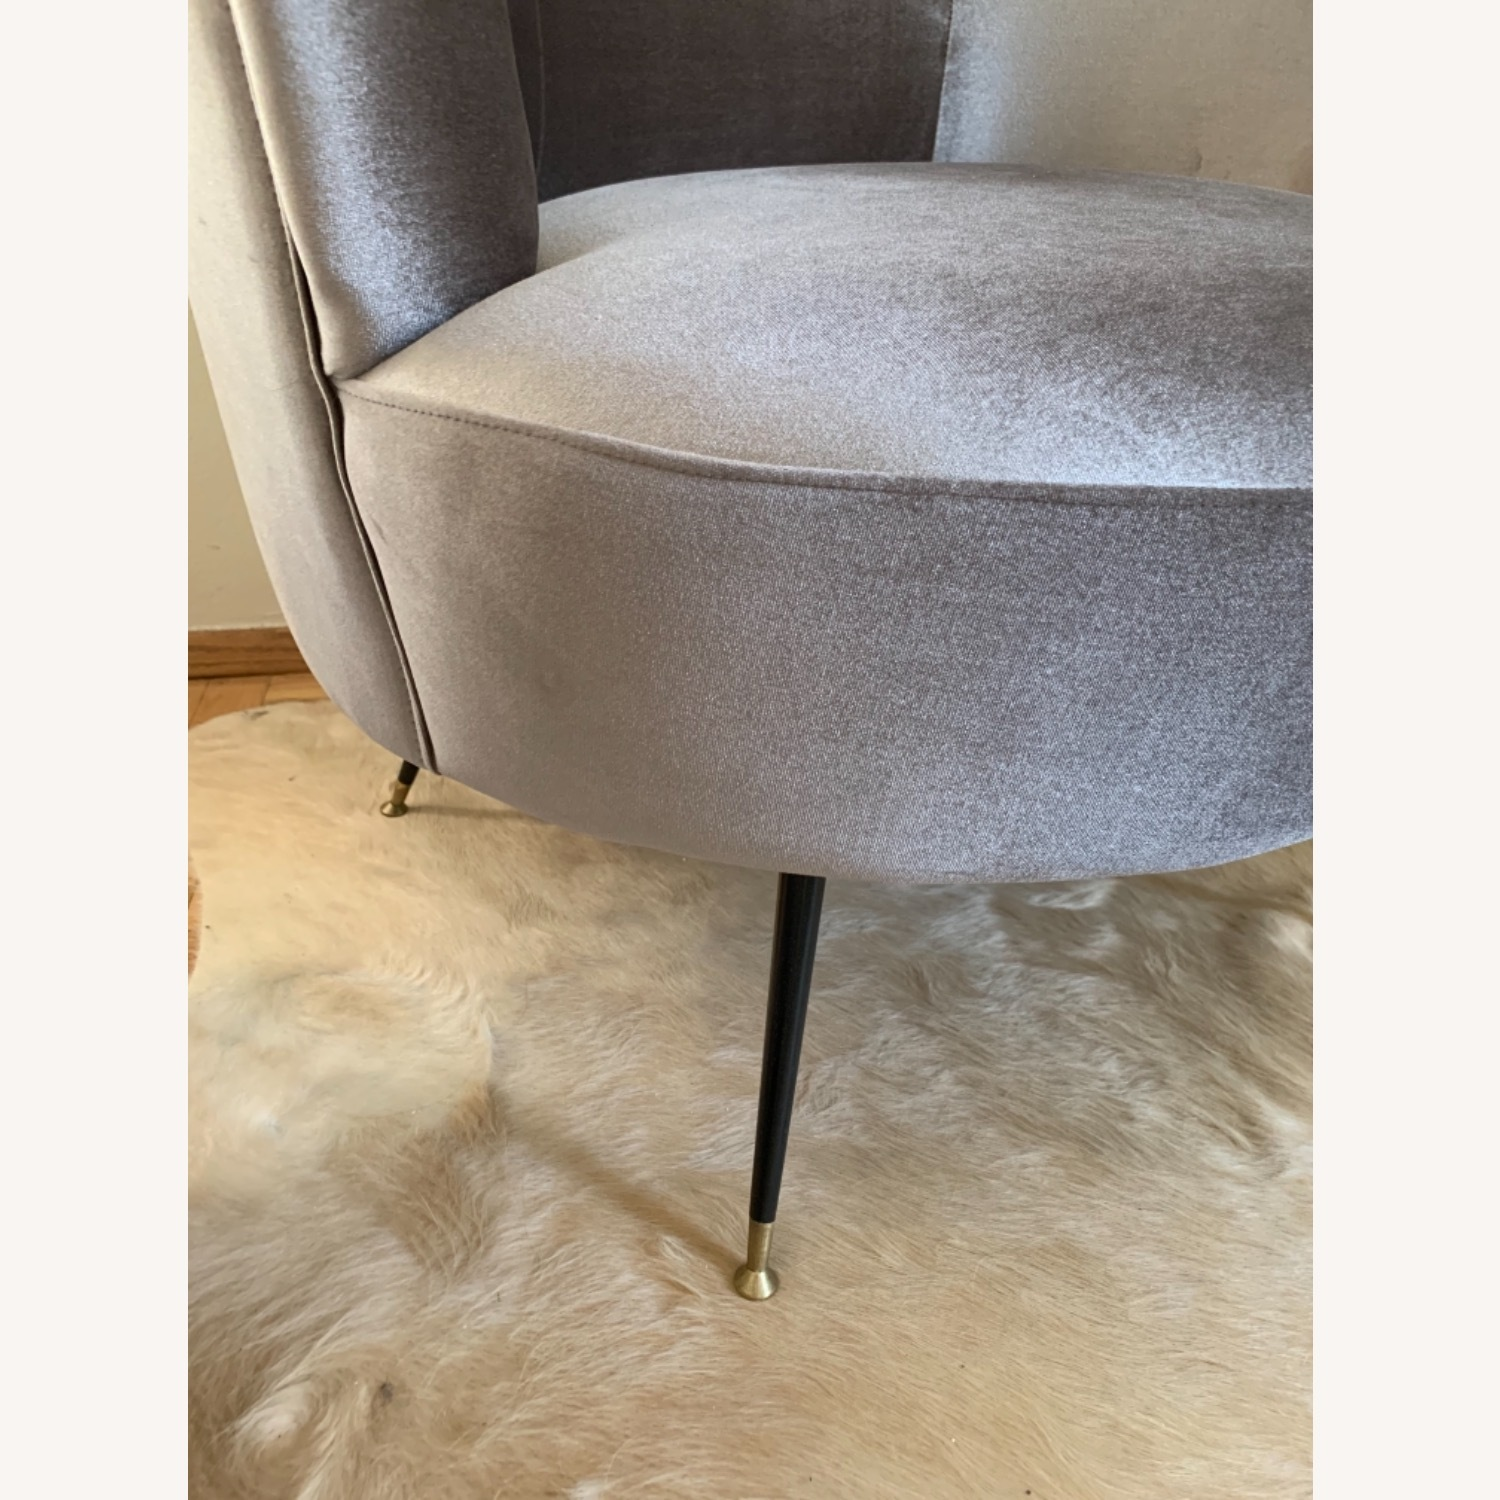 Midcentury Style Curved Chair - image-3